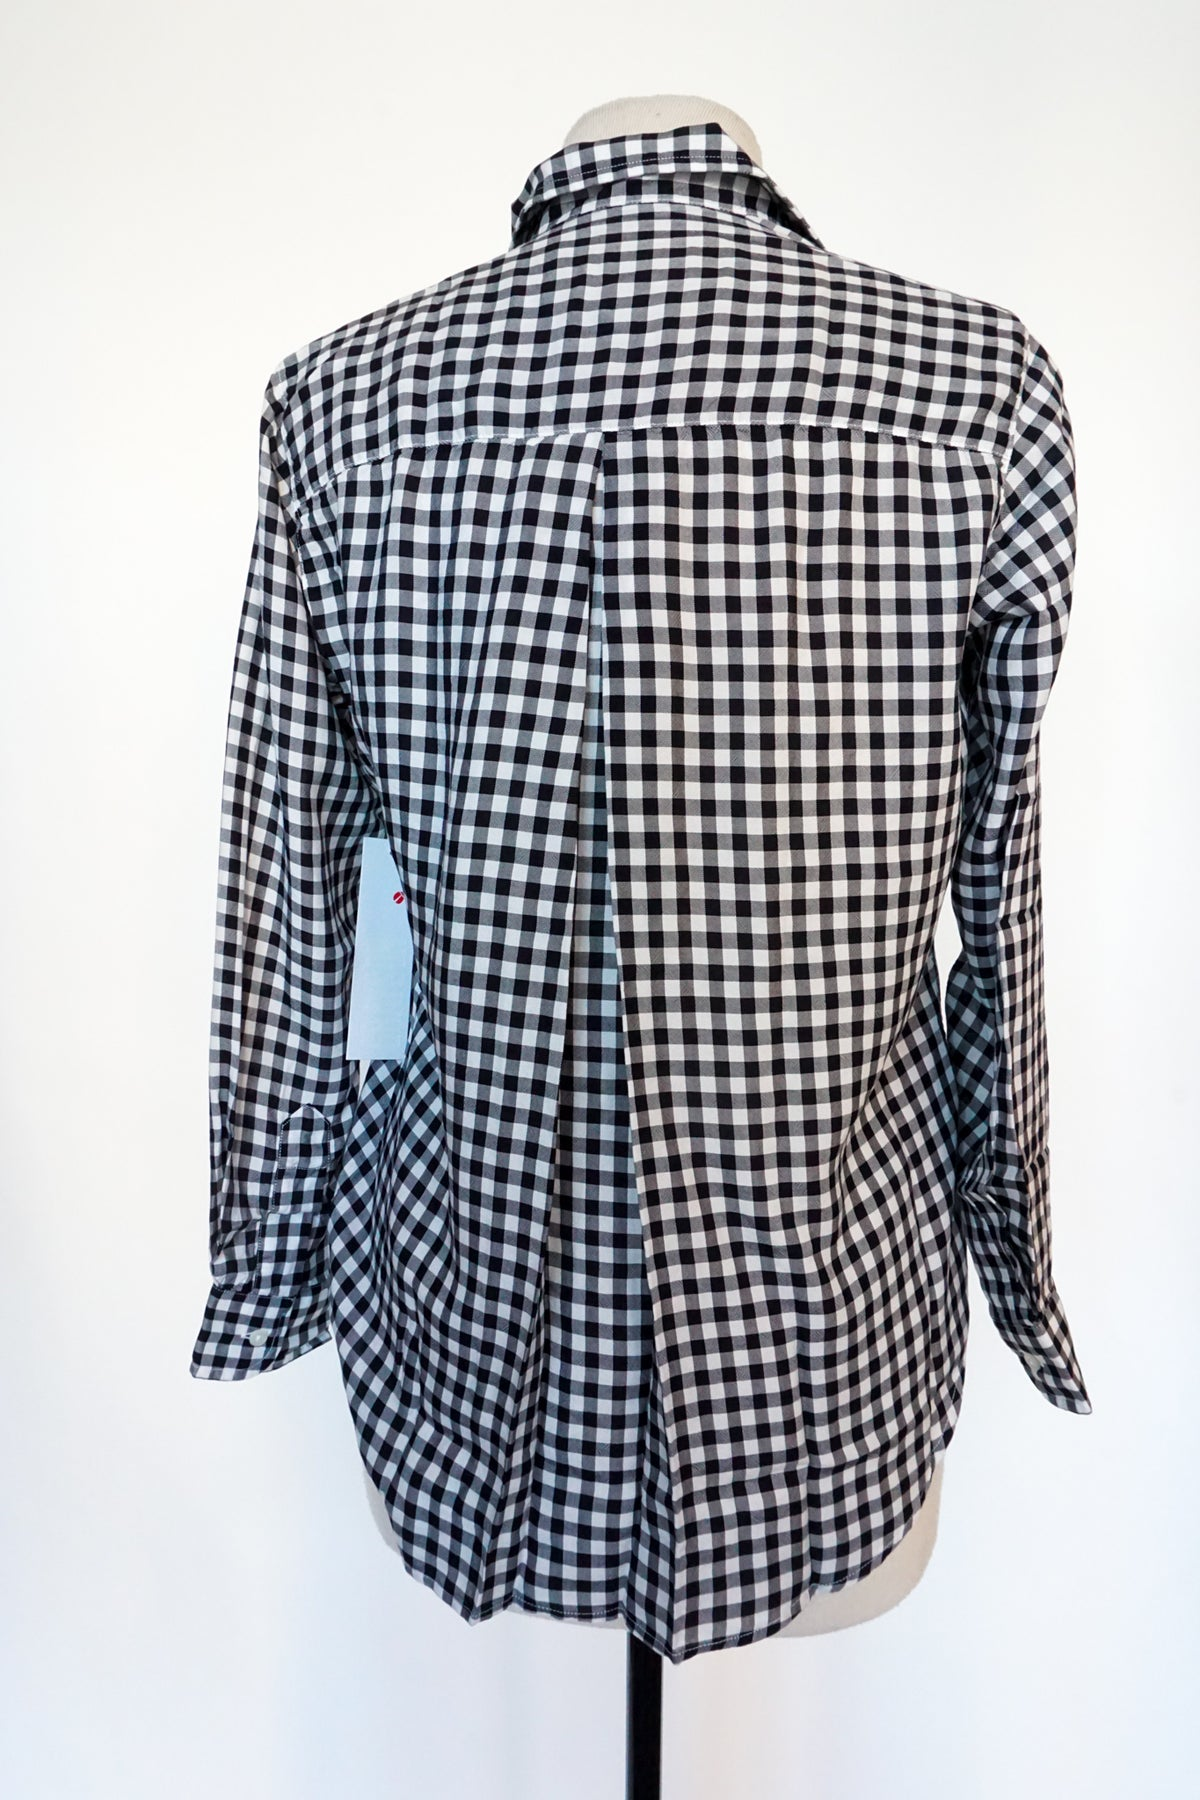 Grayson - Black and White Buffalo Plaid